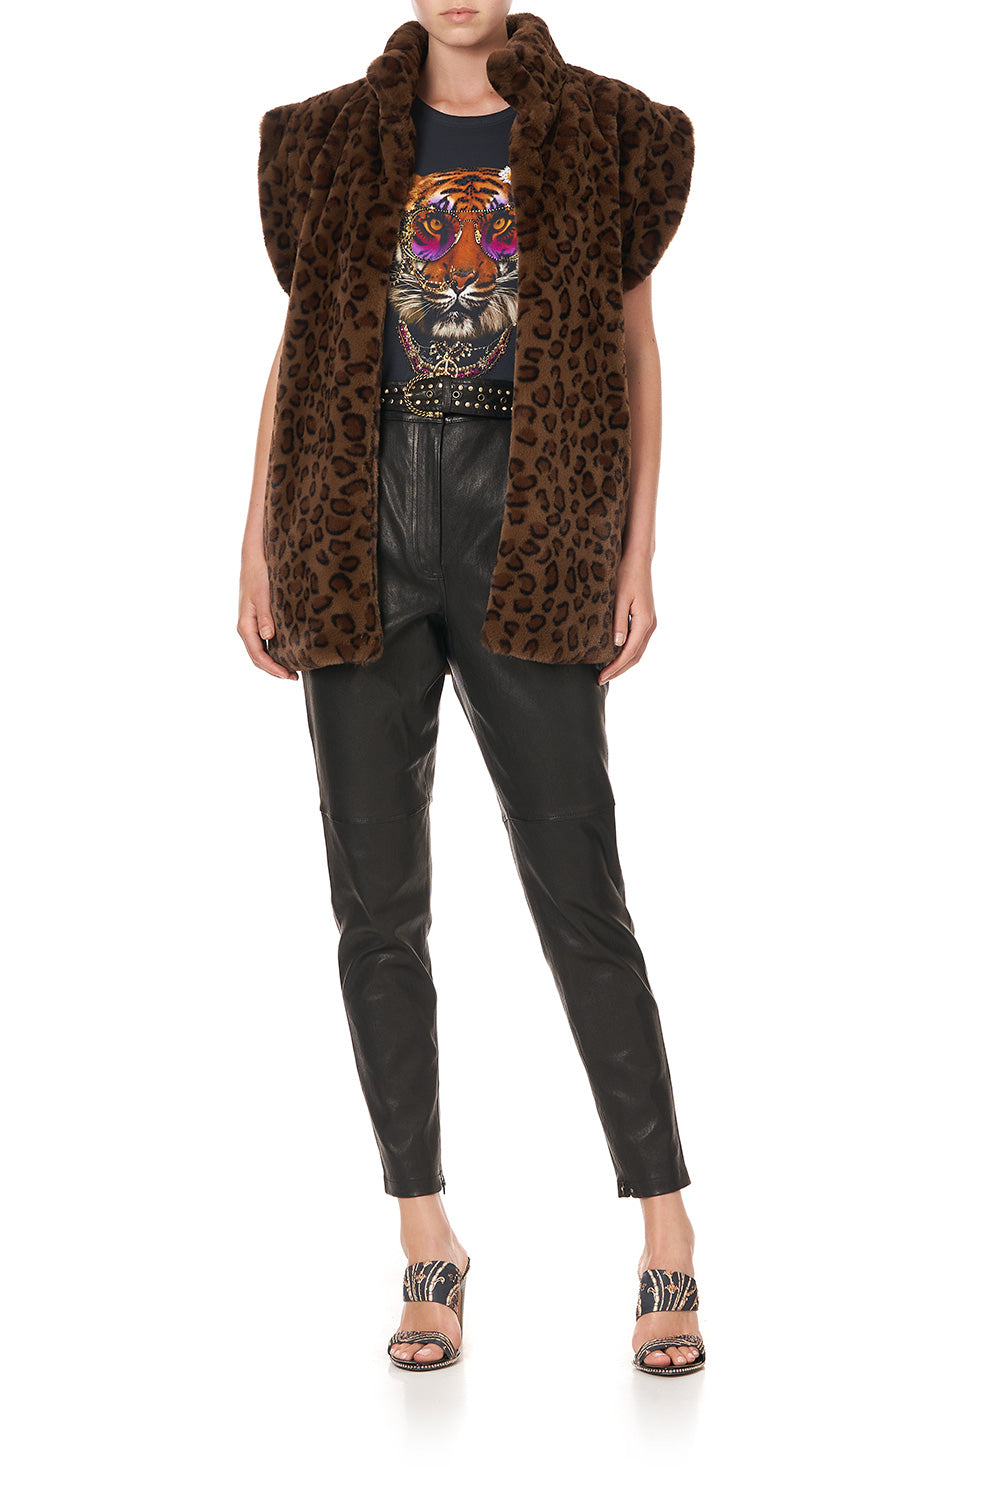 OVERSIZED FAUX FUR GILET - FLOW STUDIO 54